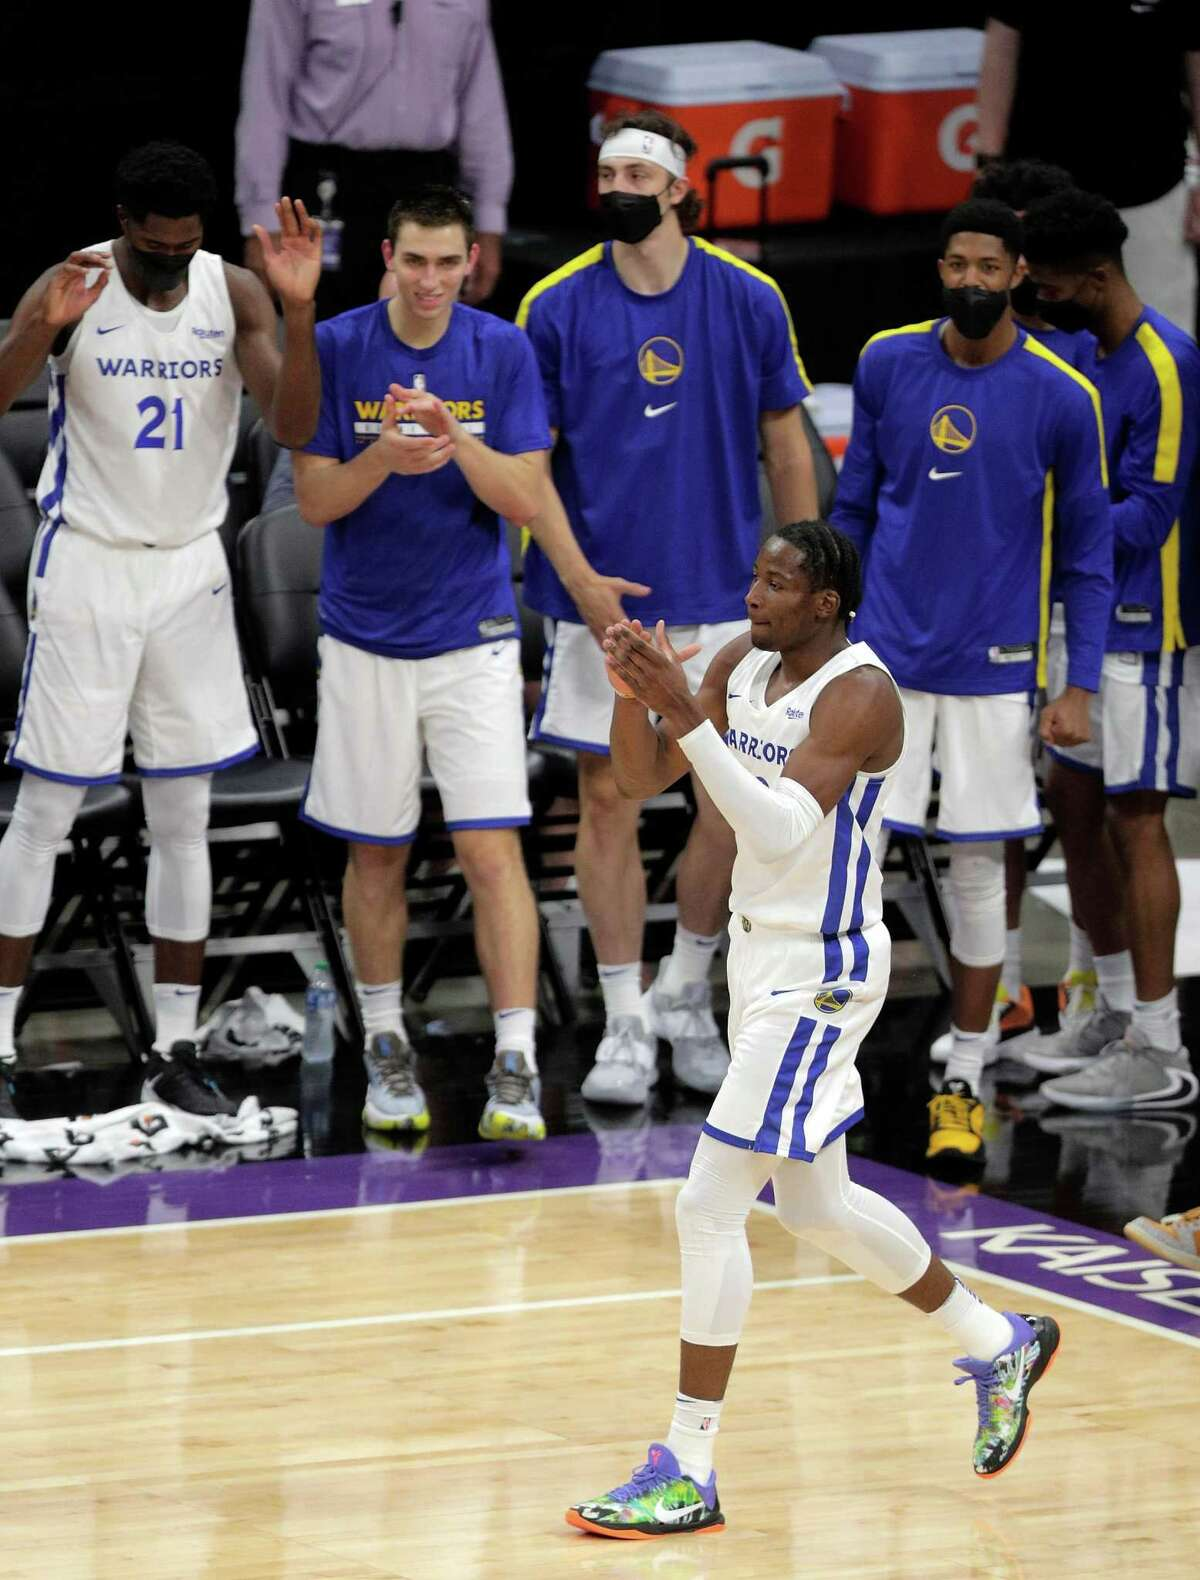 Jonathan Kuminga (00) celebrates after a dunk in the first half as the Golden State Warriors summer league played the Miami Heat Summer league in the 2021 California Classic at Golden 1 Center in Sacramento, Calif., on Wednesday, August 4, 2021.